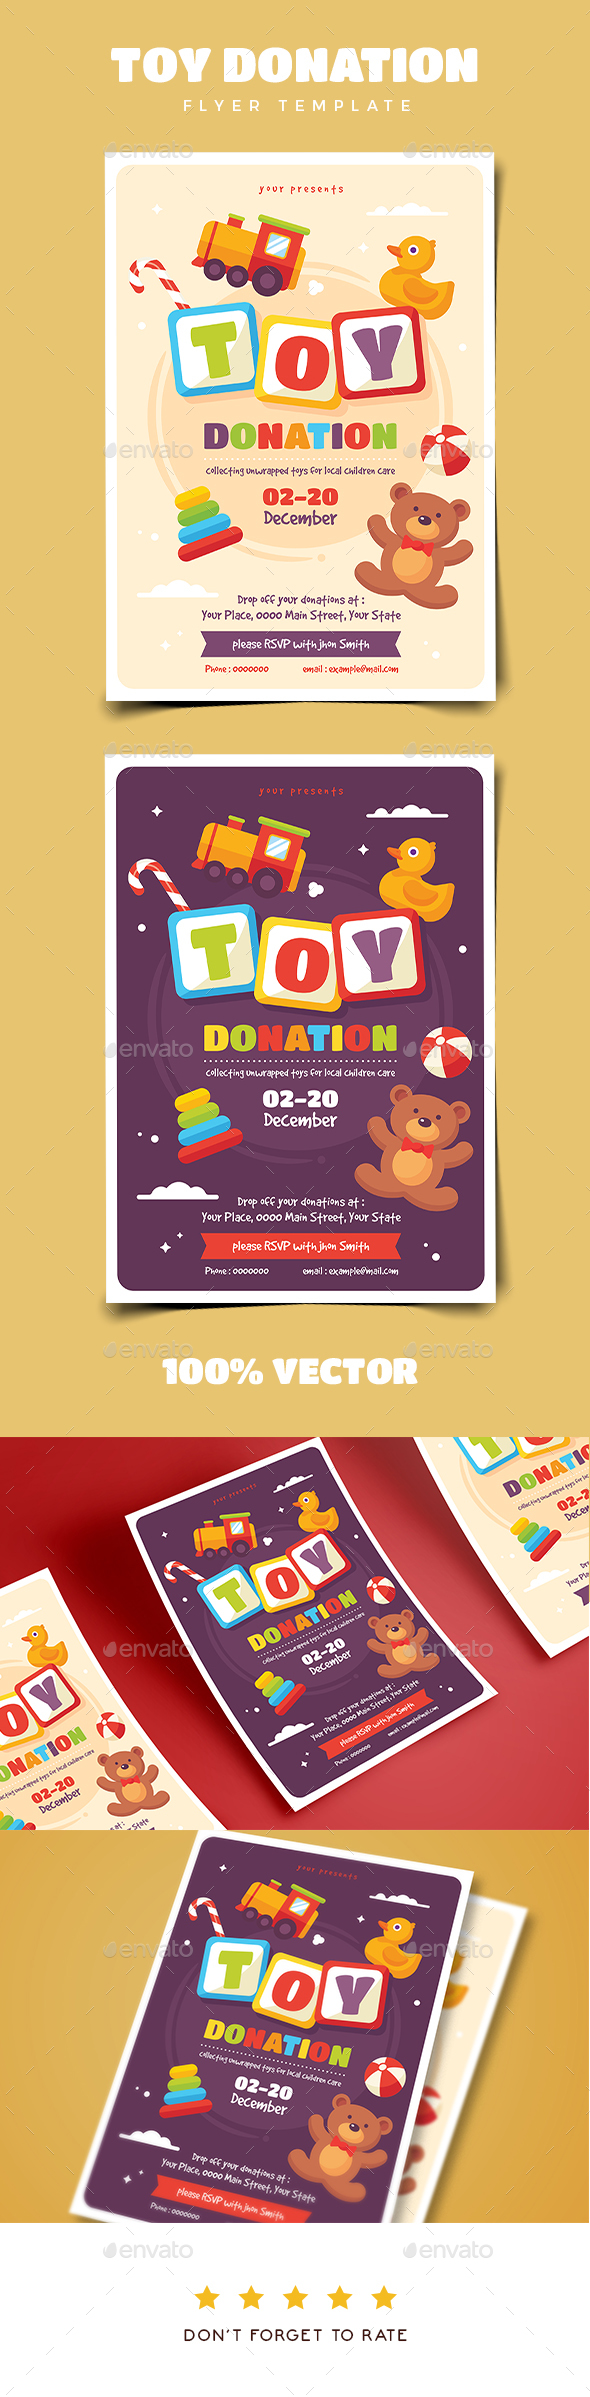 Toy Drive Flyer Template - Events Flyers